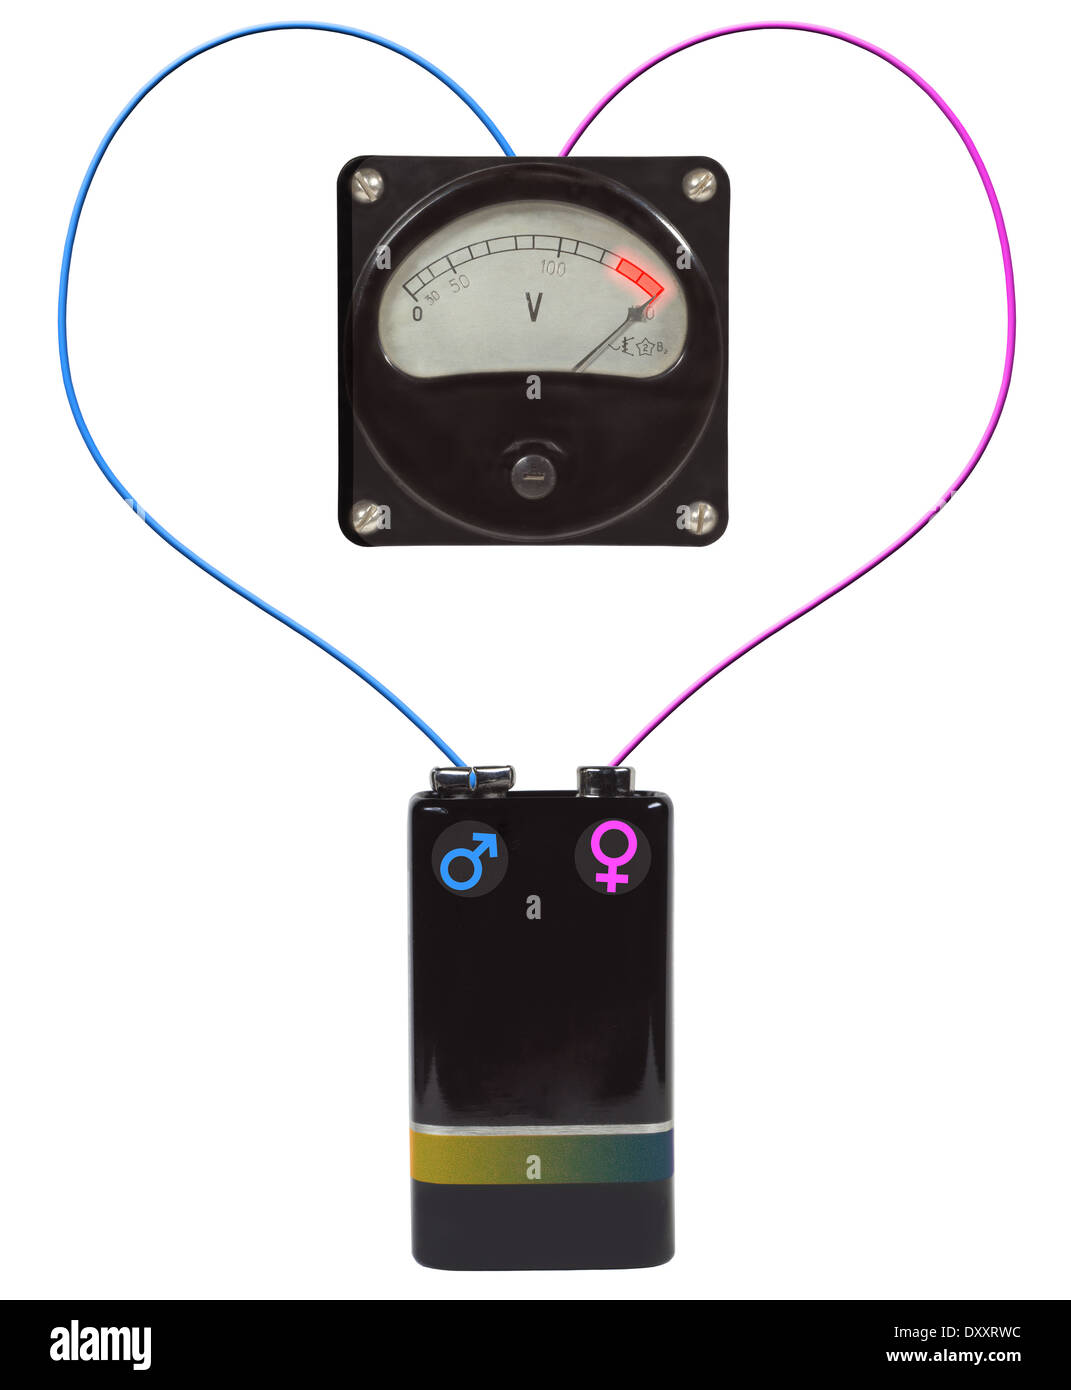 high voltage as symbol of valentine's day Stock Photo ...